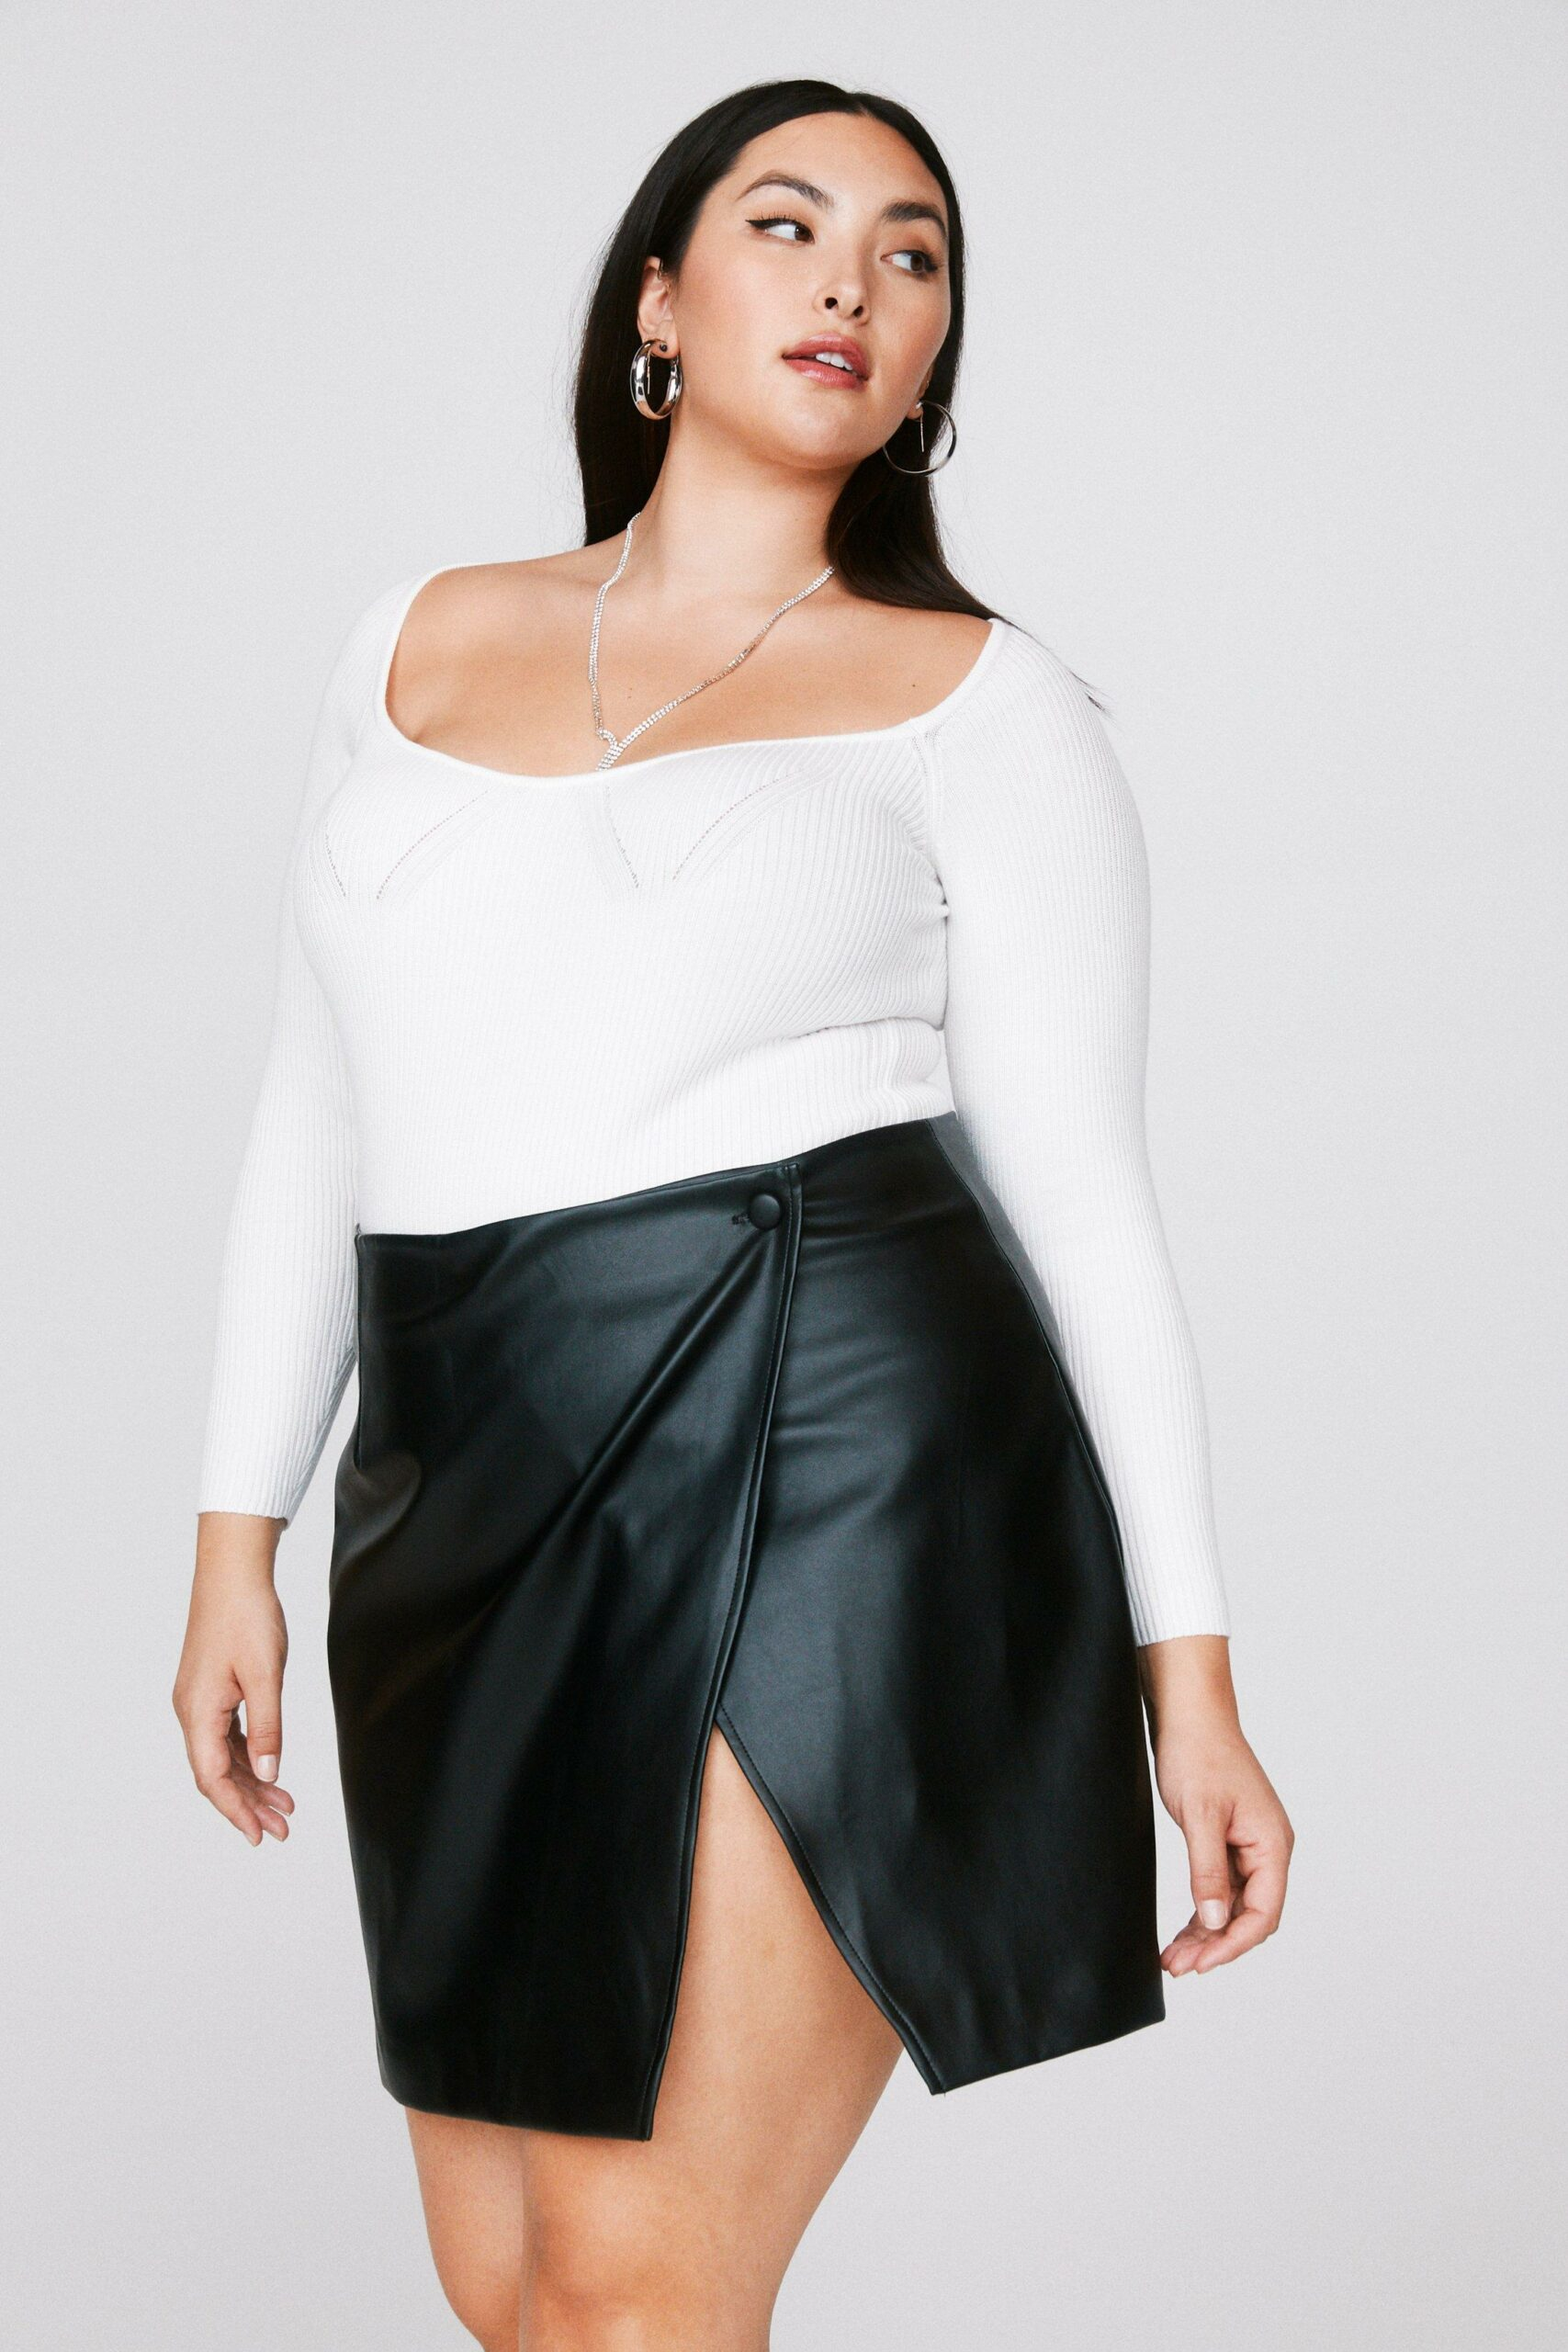 Emrata x Nasty Gal Take the Lead Faux Leather Plus Skirt